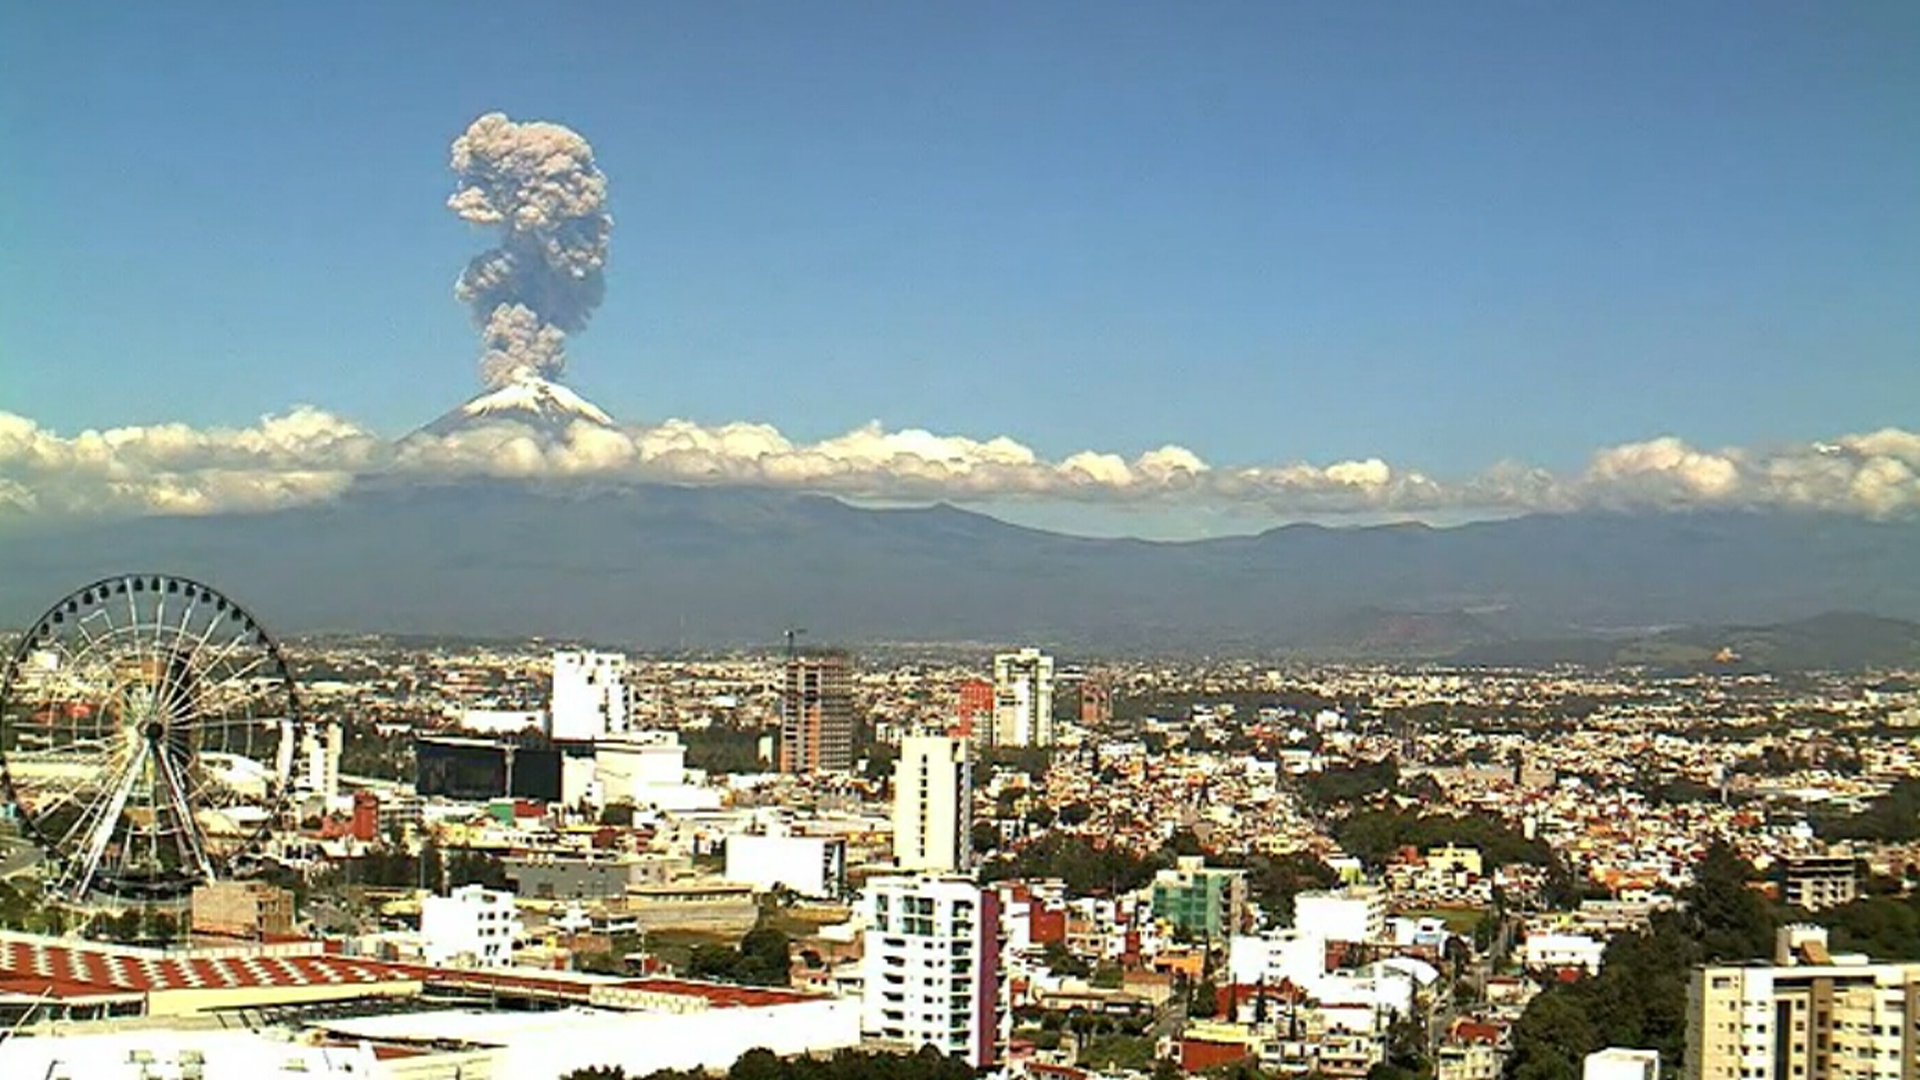 WATCH: Earth-shaking moment volcano erupts in Mexico